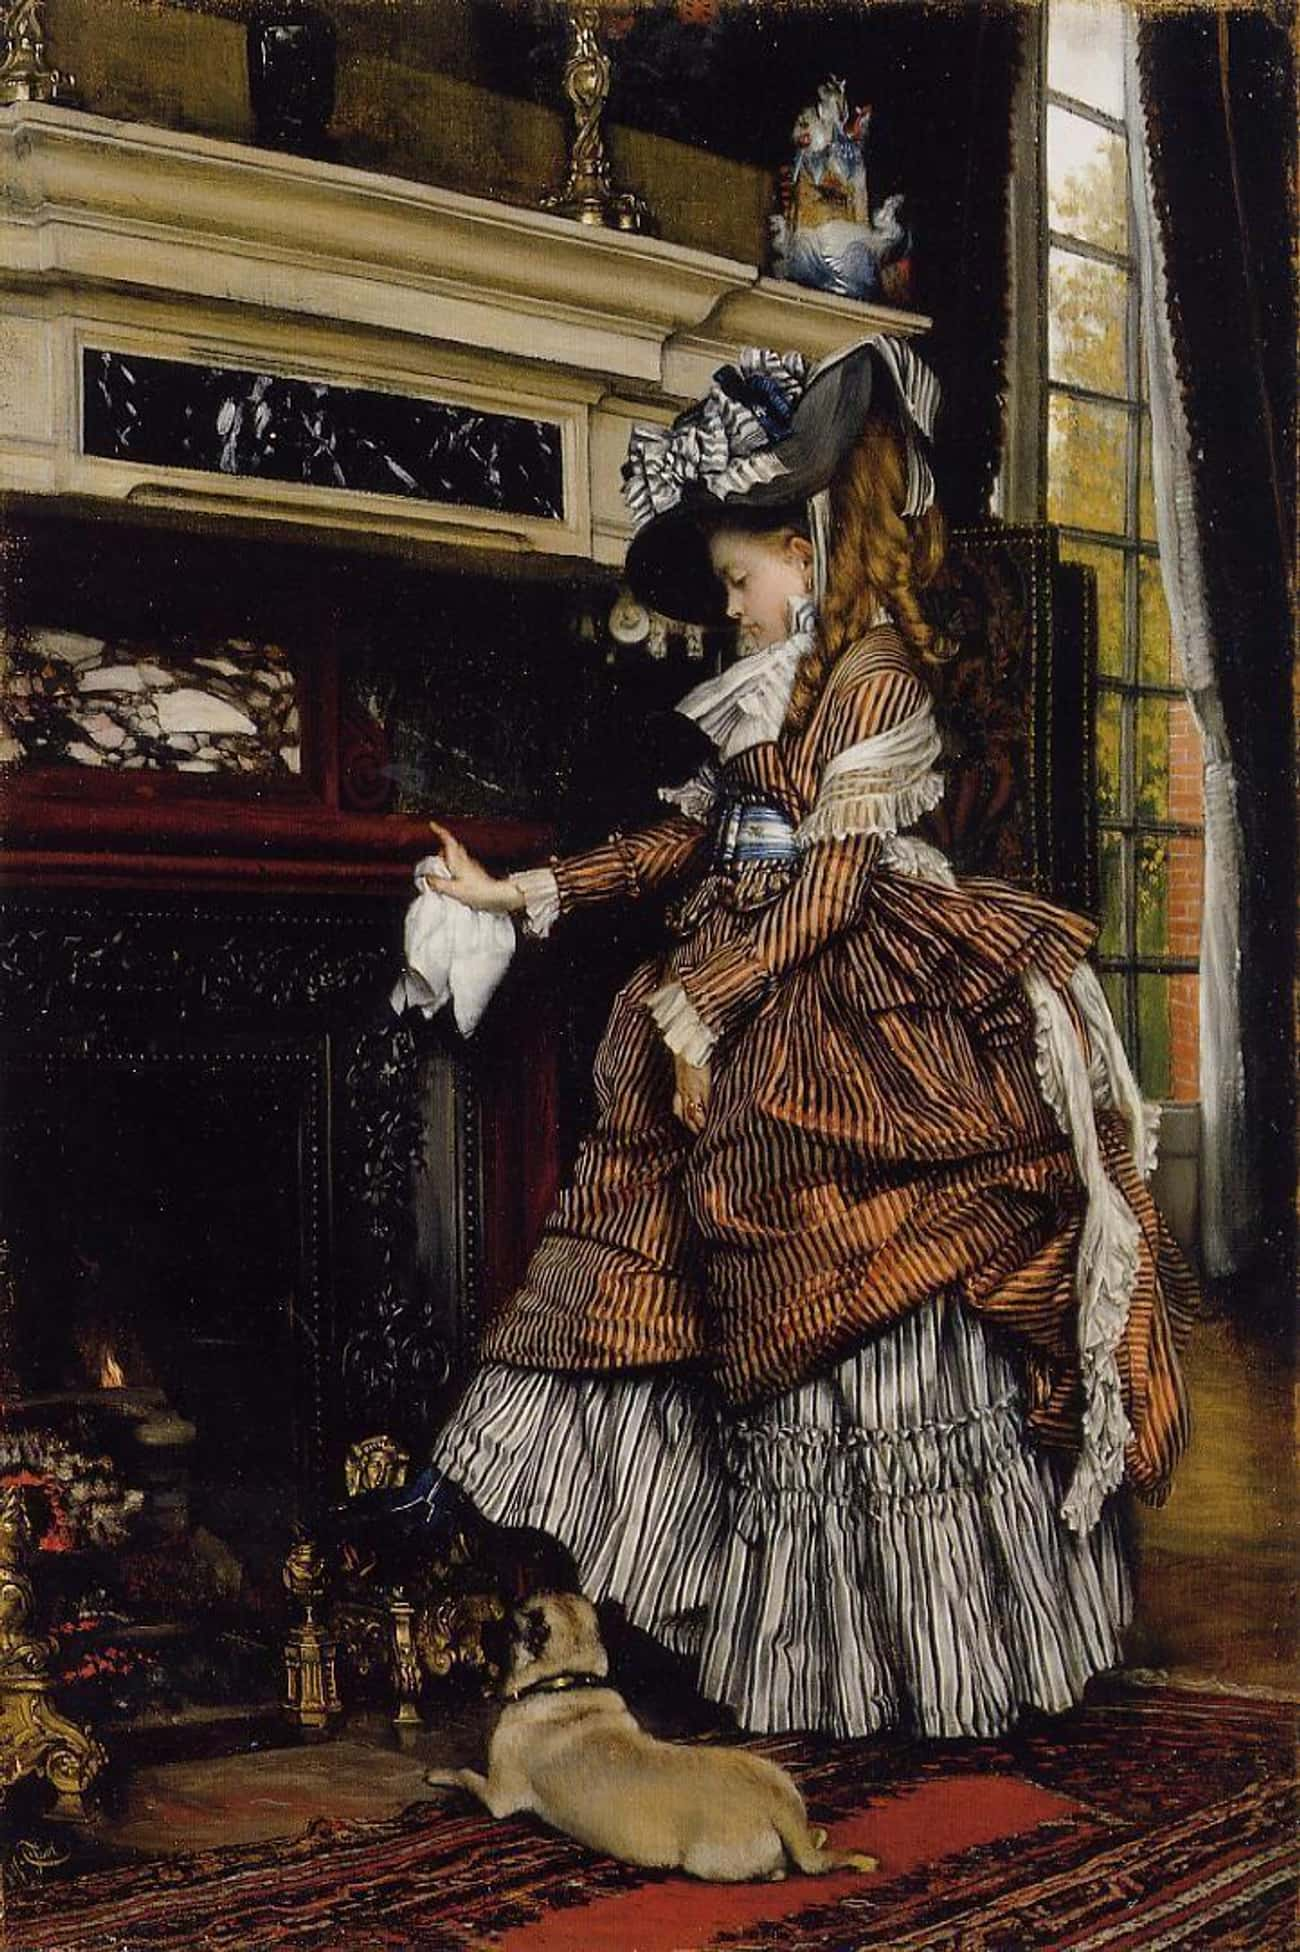 Crinolines Were A Fire Hazard  is listed (or ranked) 1 on the list What Was The Deal With Those Giant Victorian Skirts?